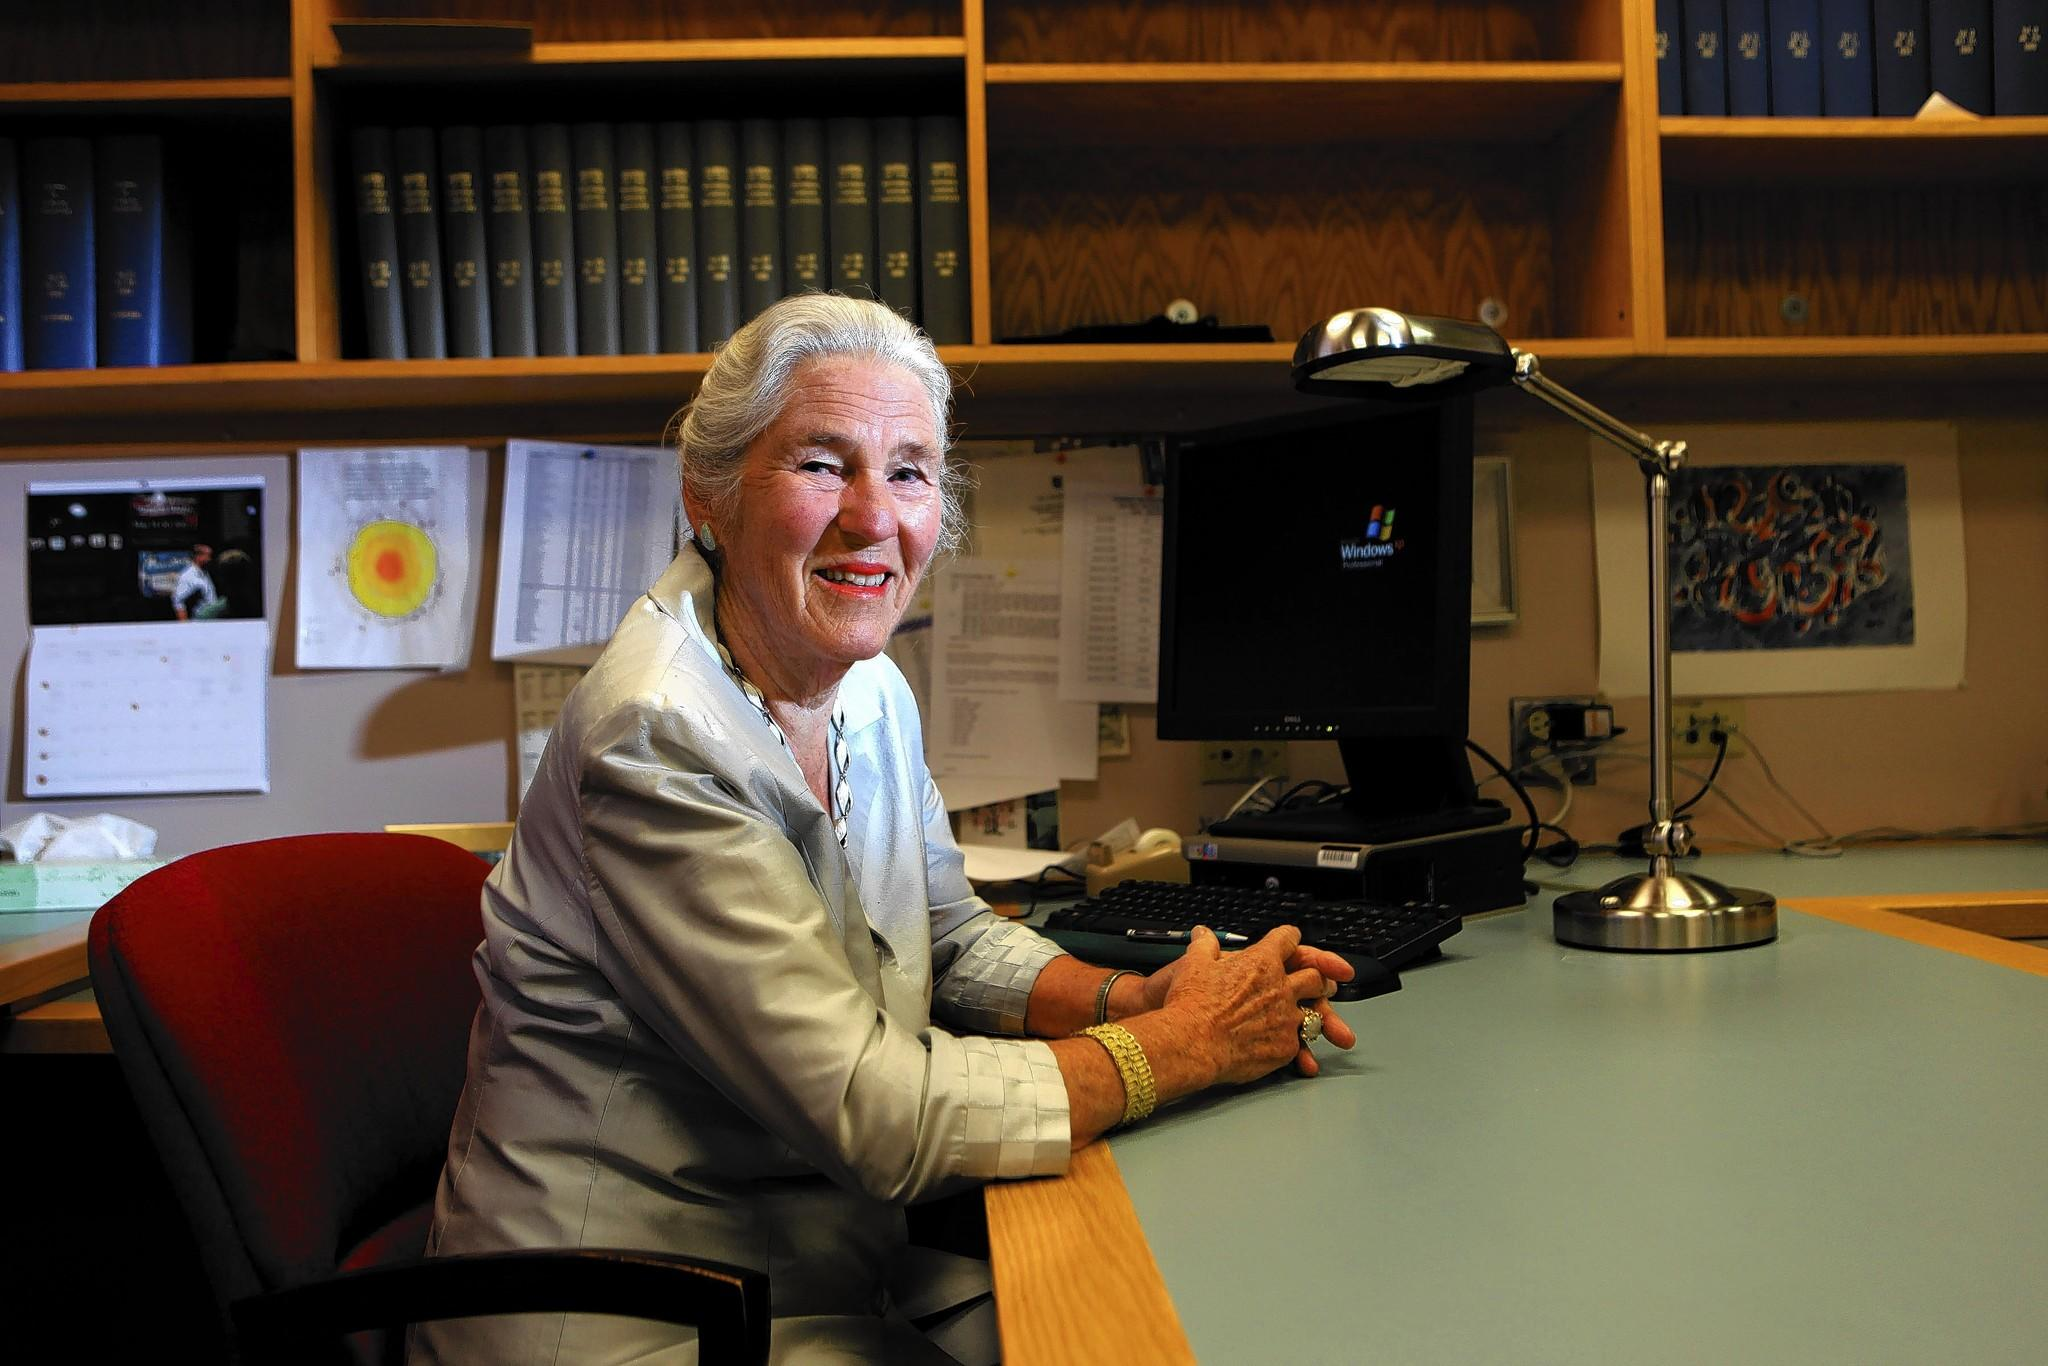 Janet Rowley won the National Medal of Science and Presidential Medal of Freedom for her cancer research.